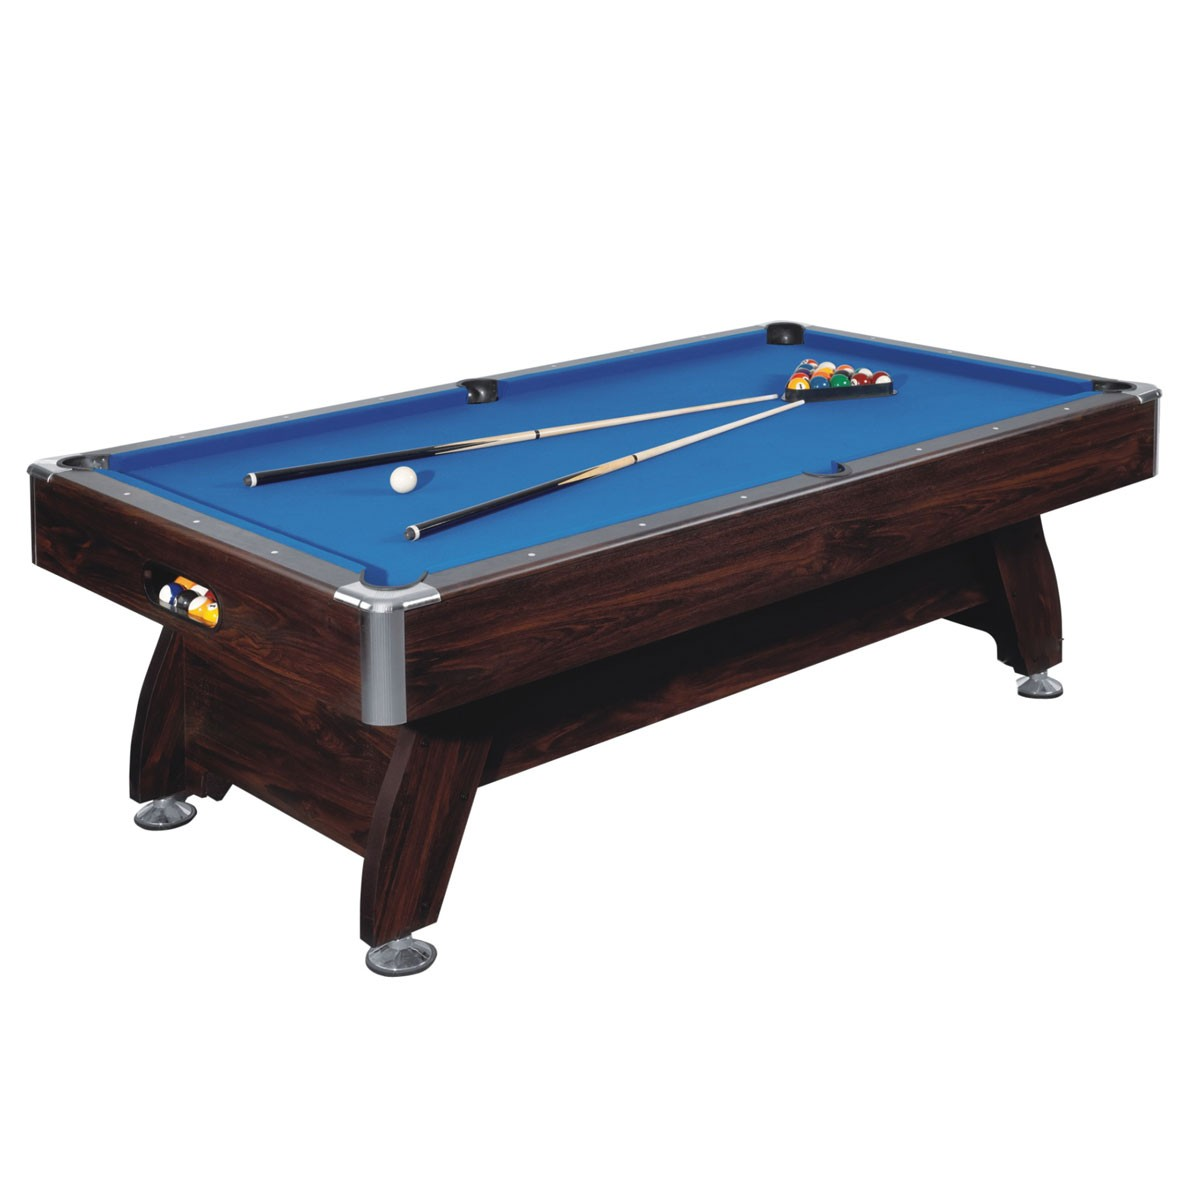 8 foot pool table with ball return system and accessories zlb p02 decoraport canada - Billiard table accessories ...